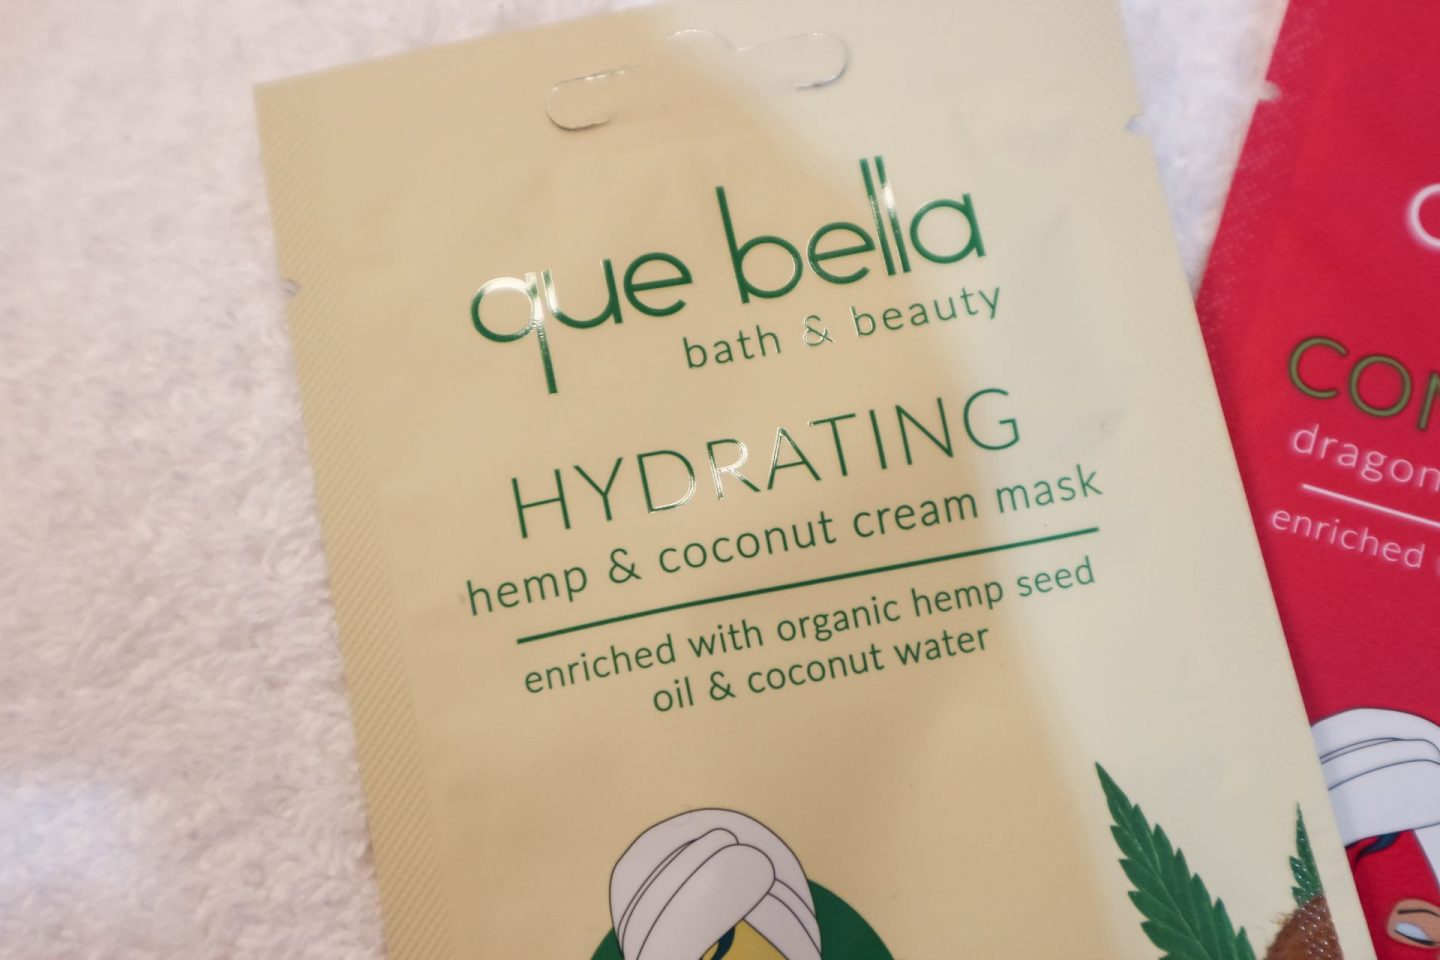 Que Bella Hydrating Hemp & Coconut Cream Mask review